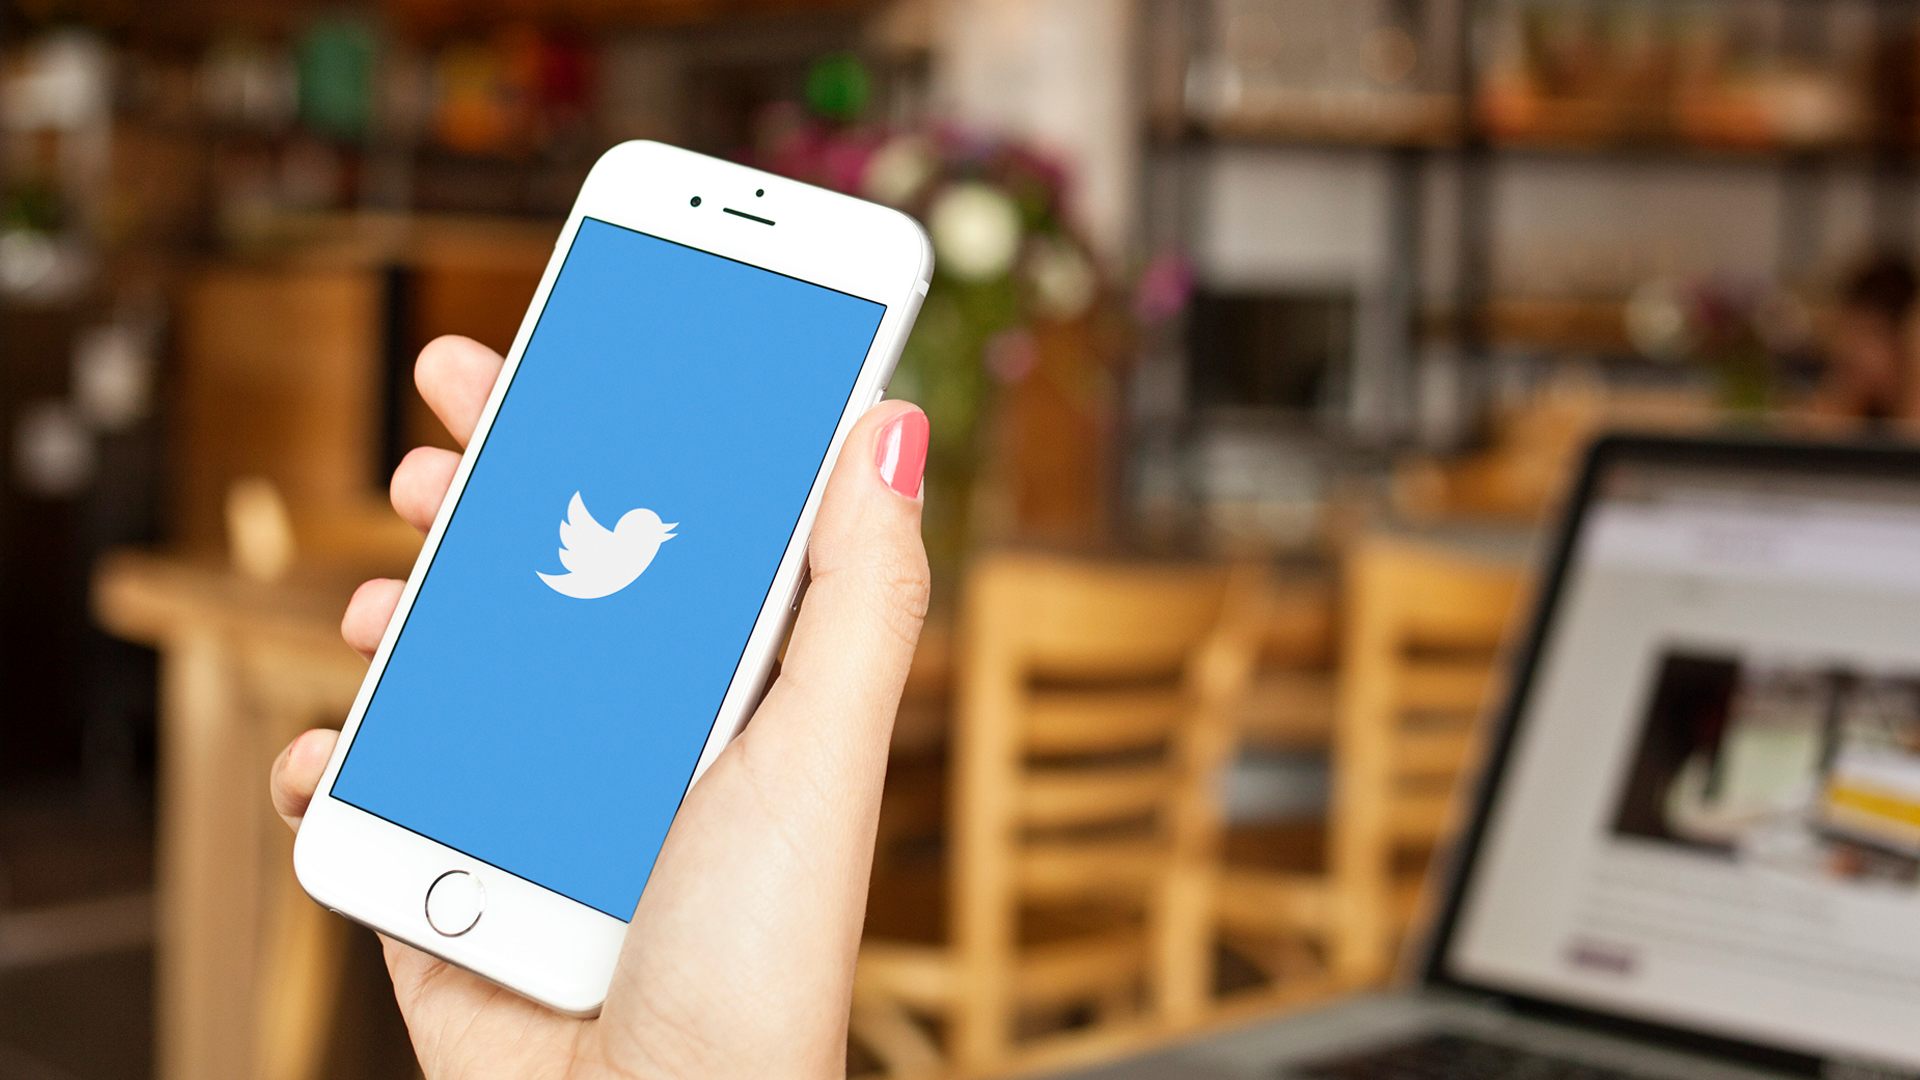 6 Simple Ways To Build Your Email List Using Twitter